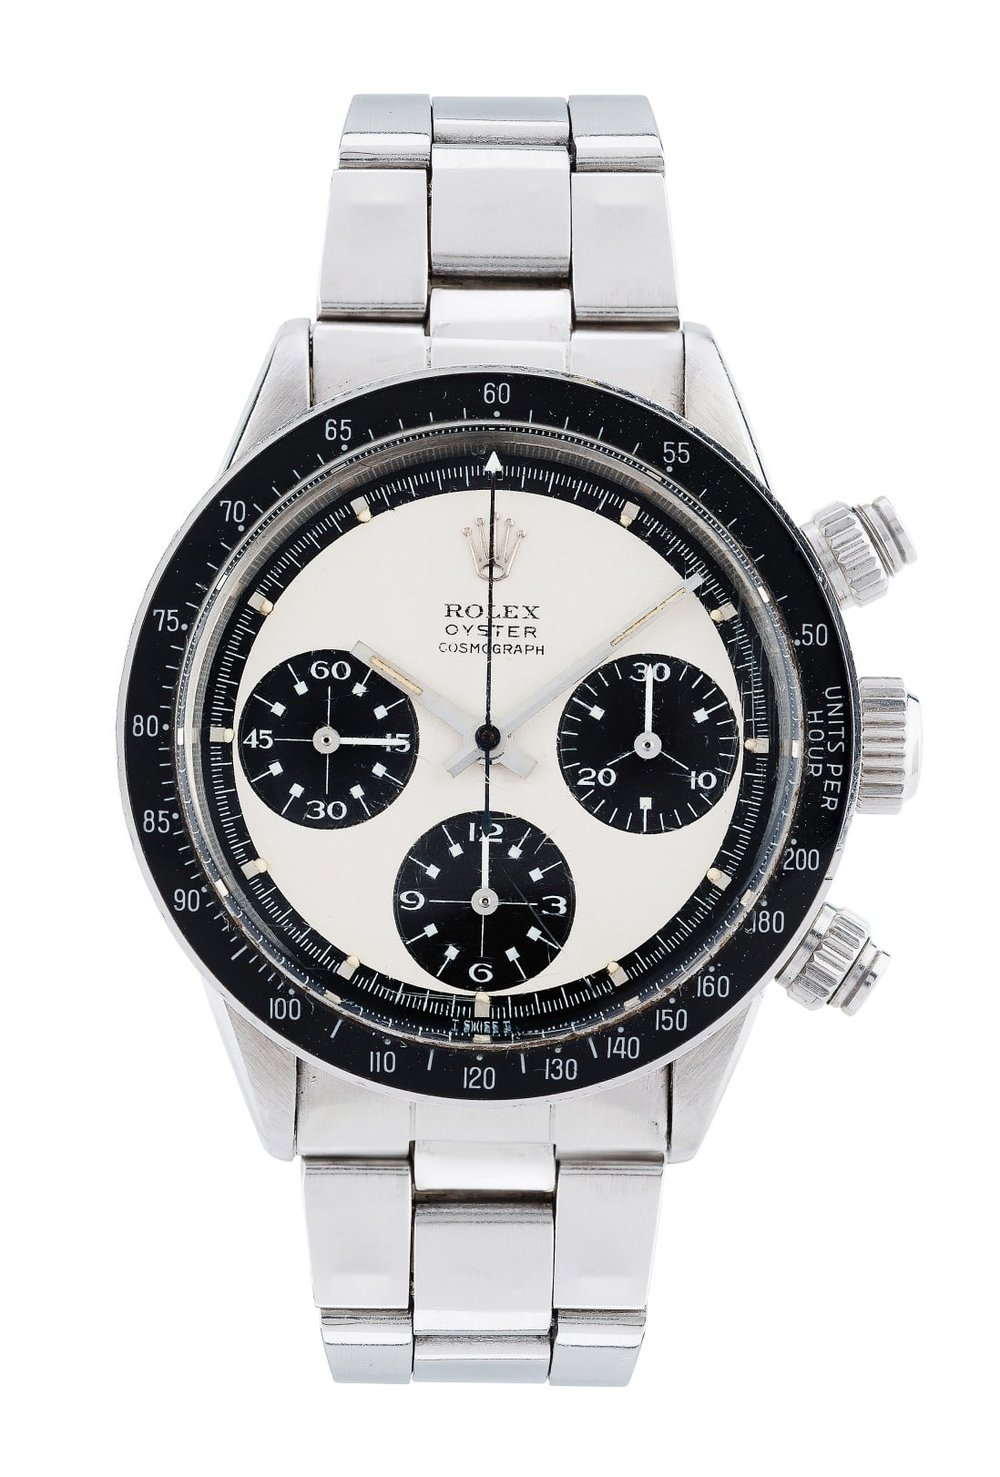 Paul Newman's Daytona Rolex driving watch